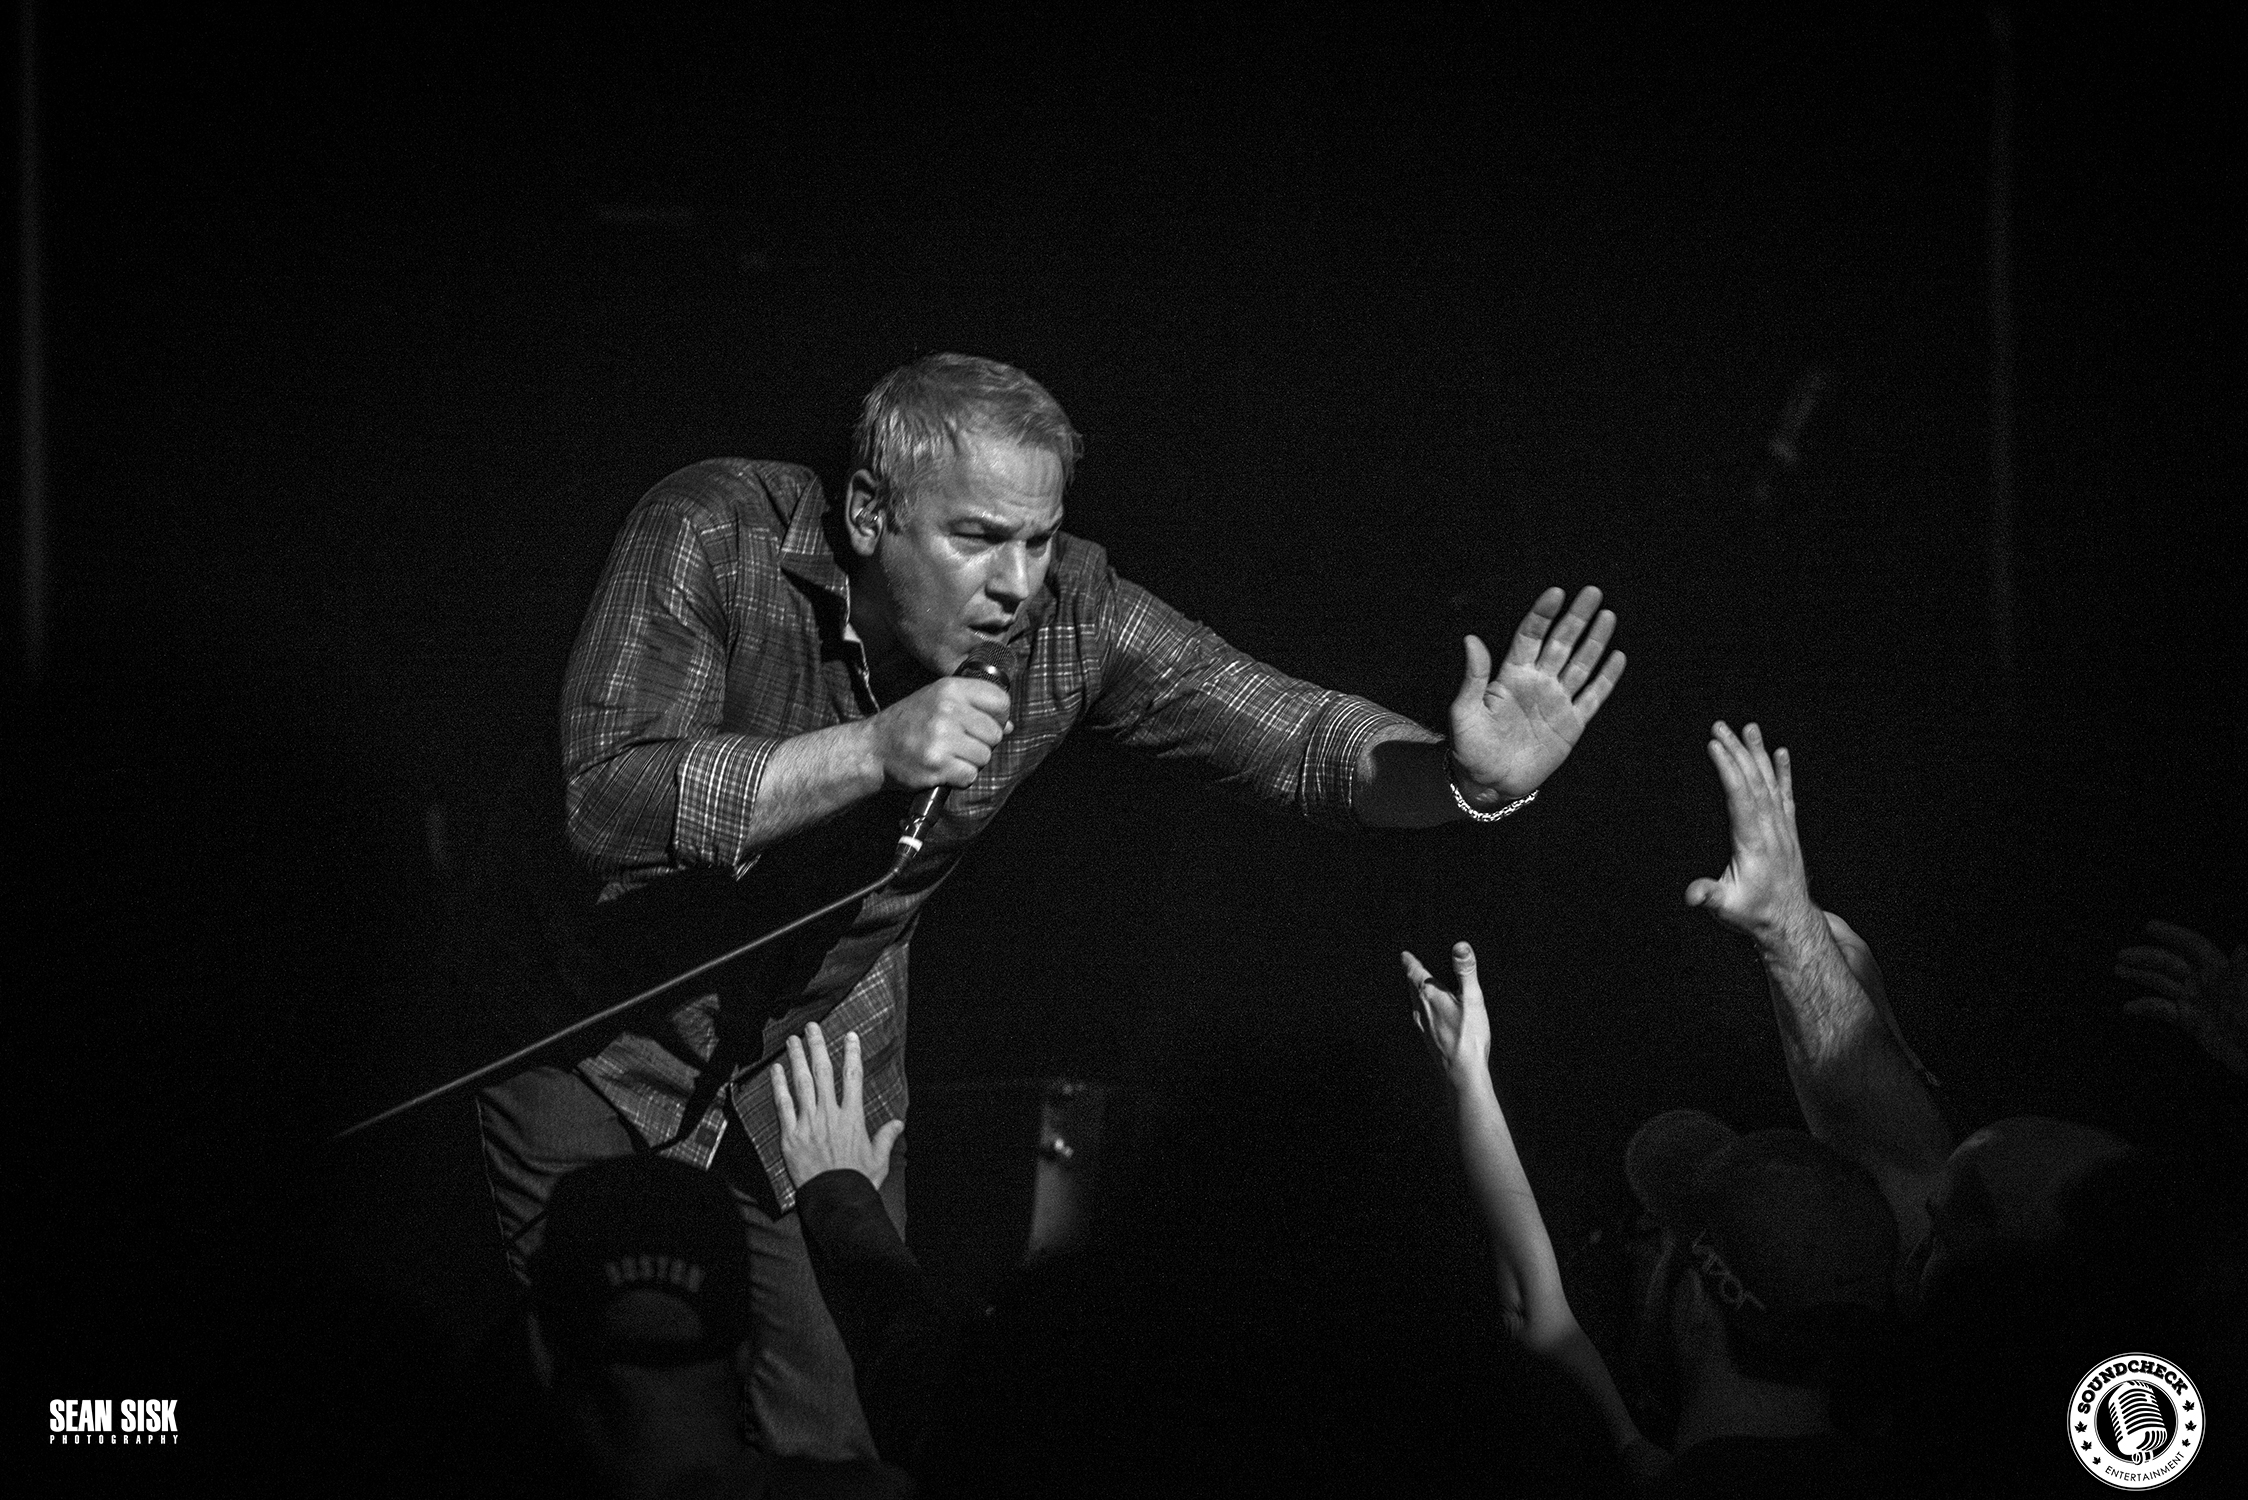 Edwin performs at TD Place with Our Lady Peace – photo by Sean Sisk for Sound Check Entertainment